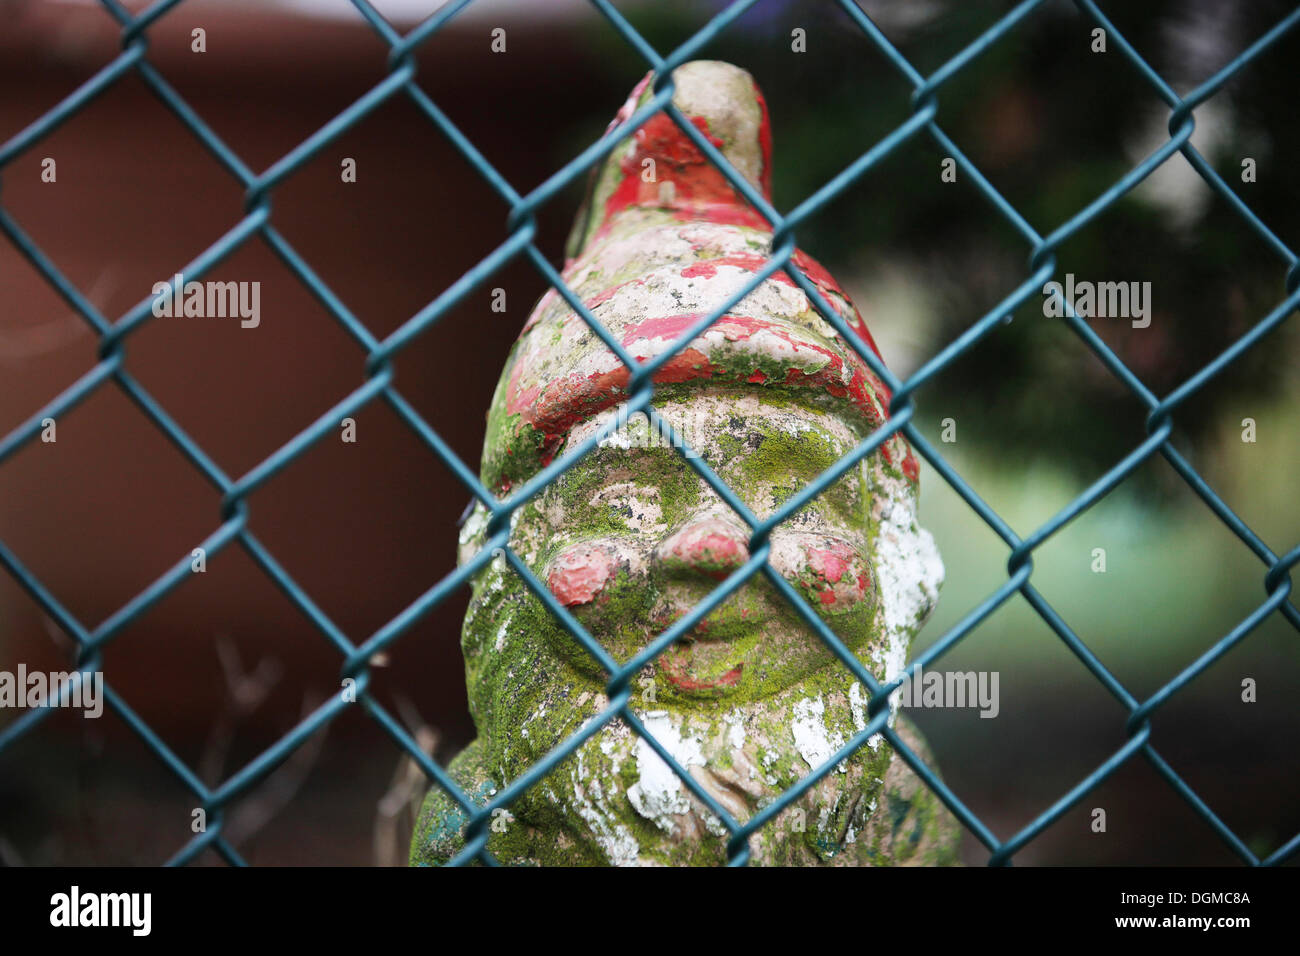 Weathered garden gnome behind a mesh wire fence in an allotment - Stock Image